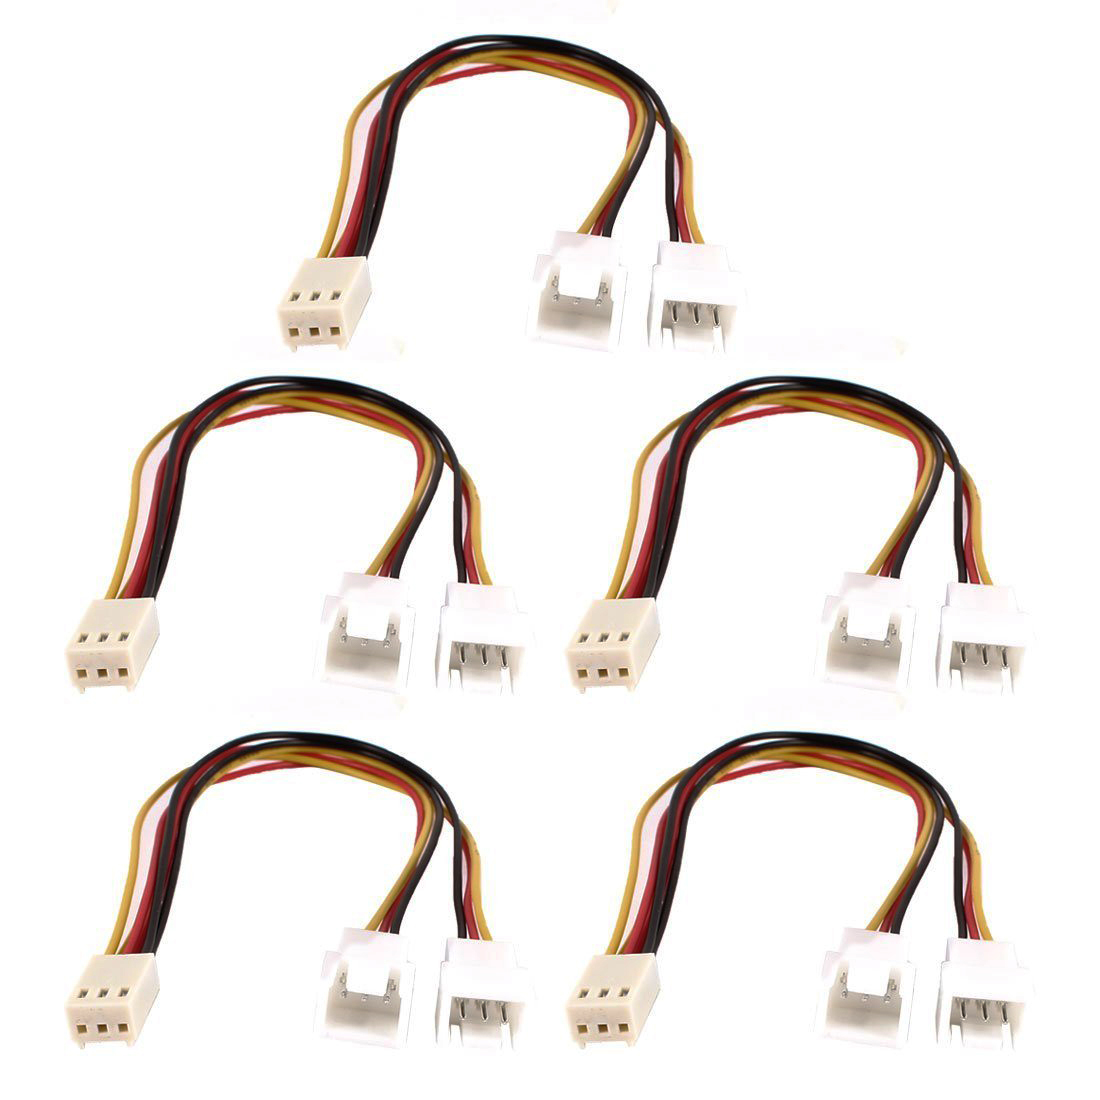 Brand New 5 Pcs 3 Pin Female to Dual Male PC Fan Splitter Extension Cable 20cm